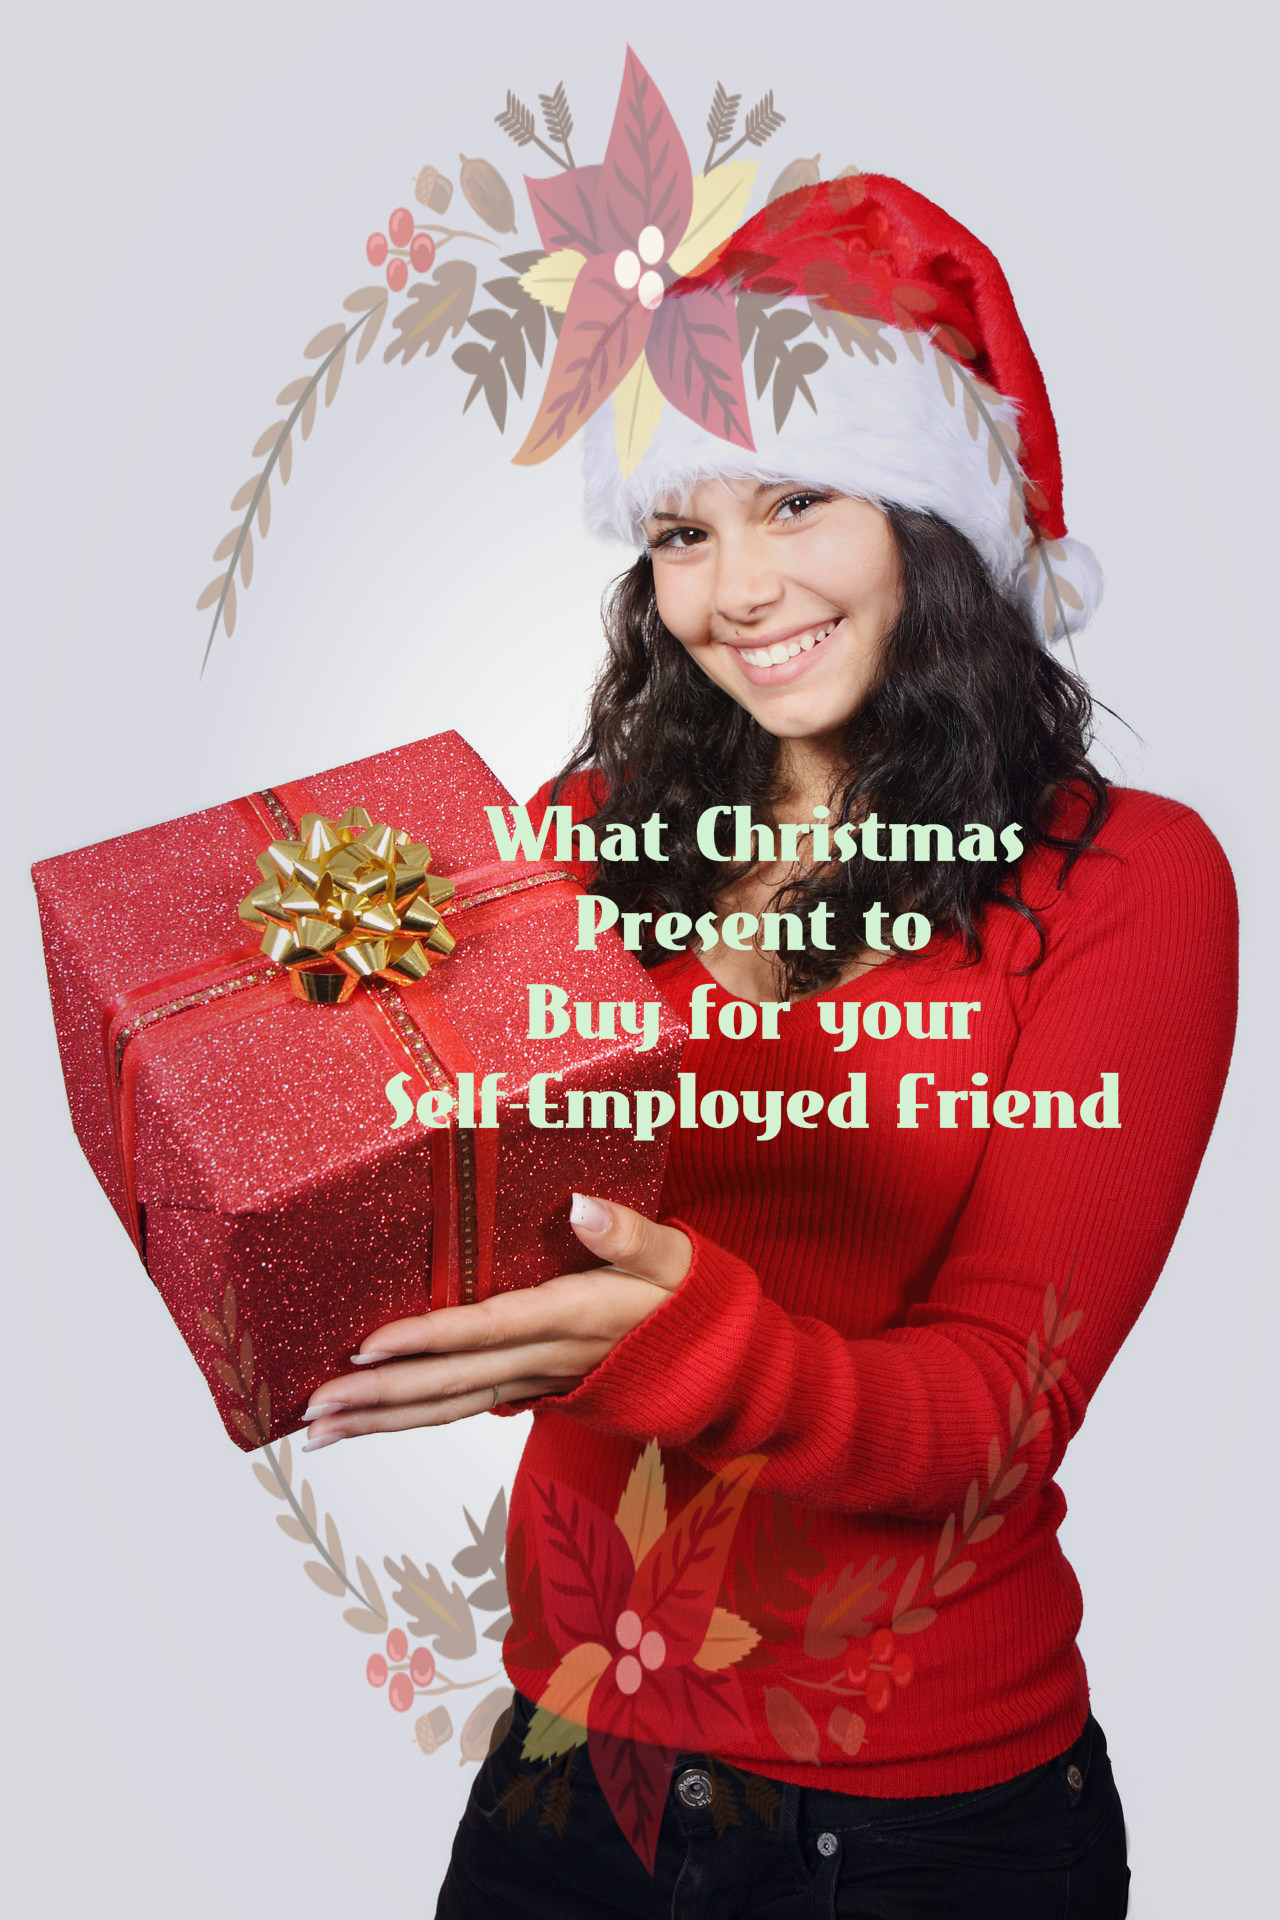 What Christmas Present to Buy for your Self-Employed Friend: 15 Gift Ideas